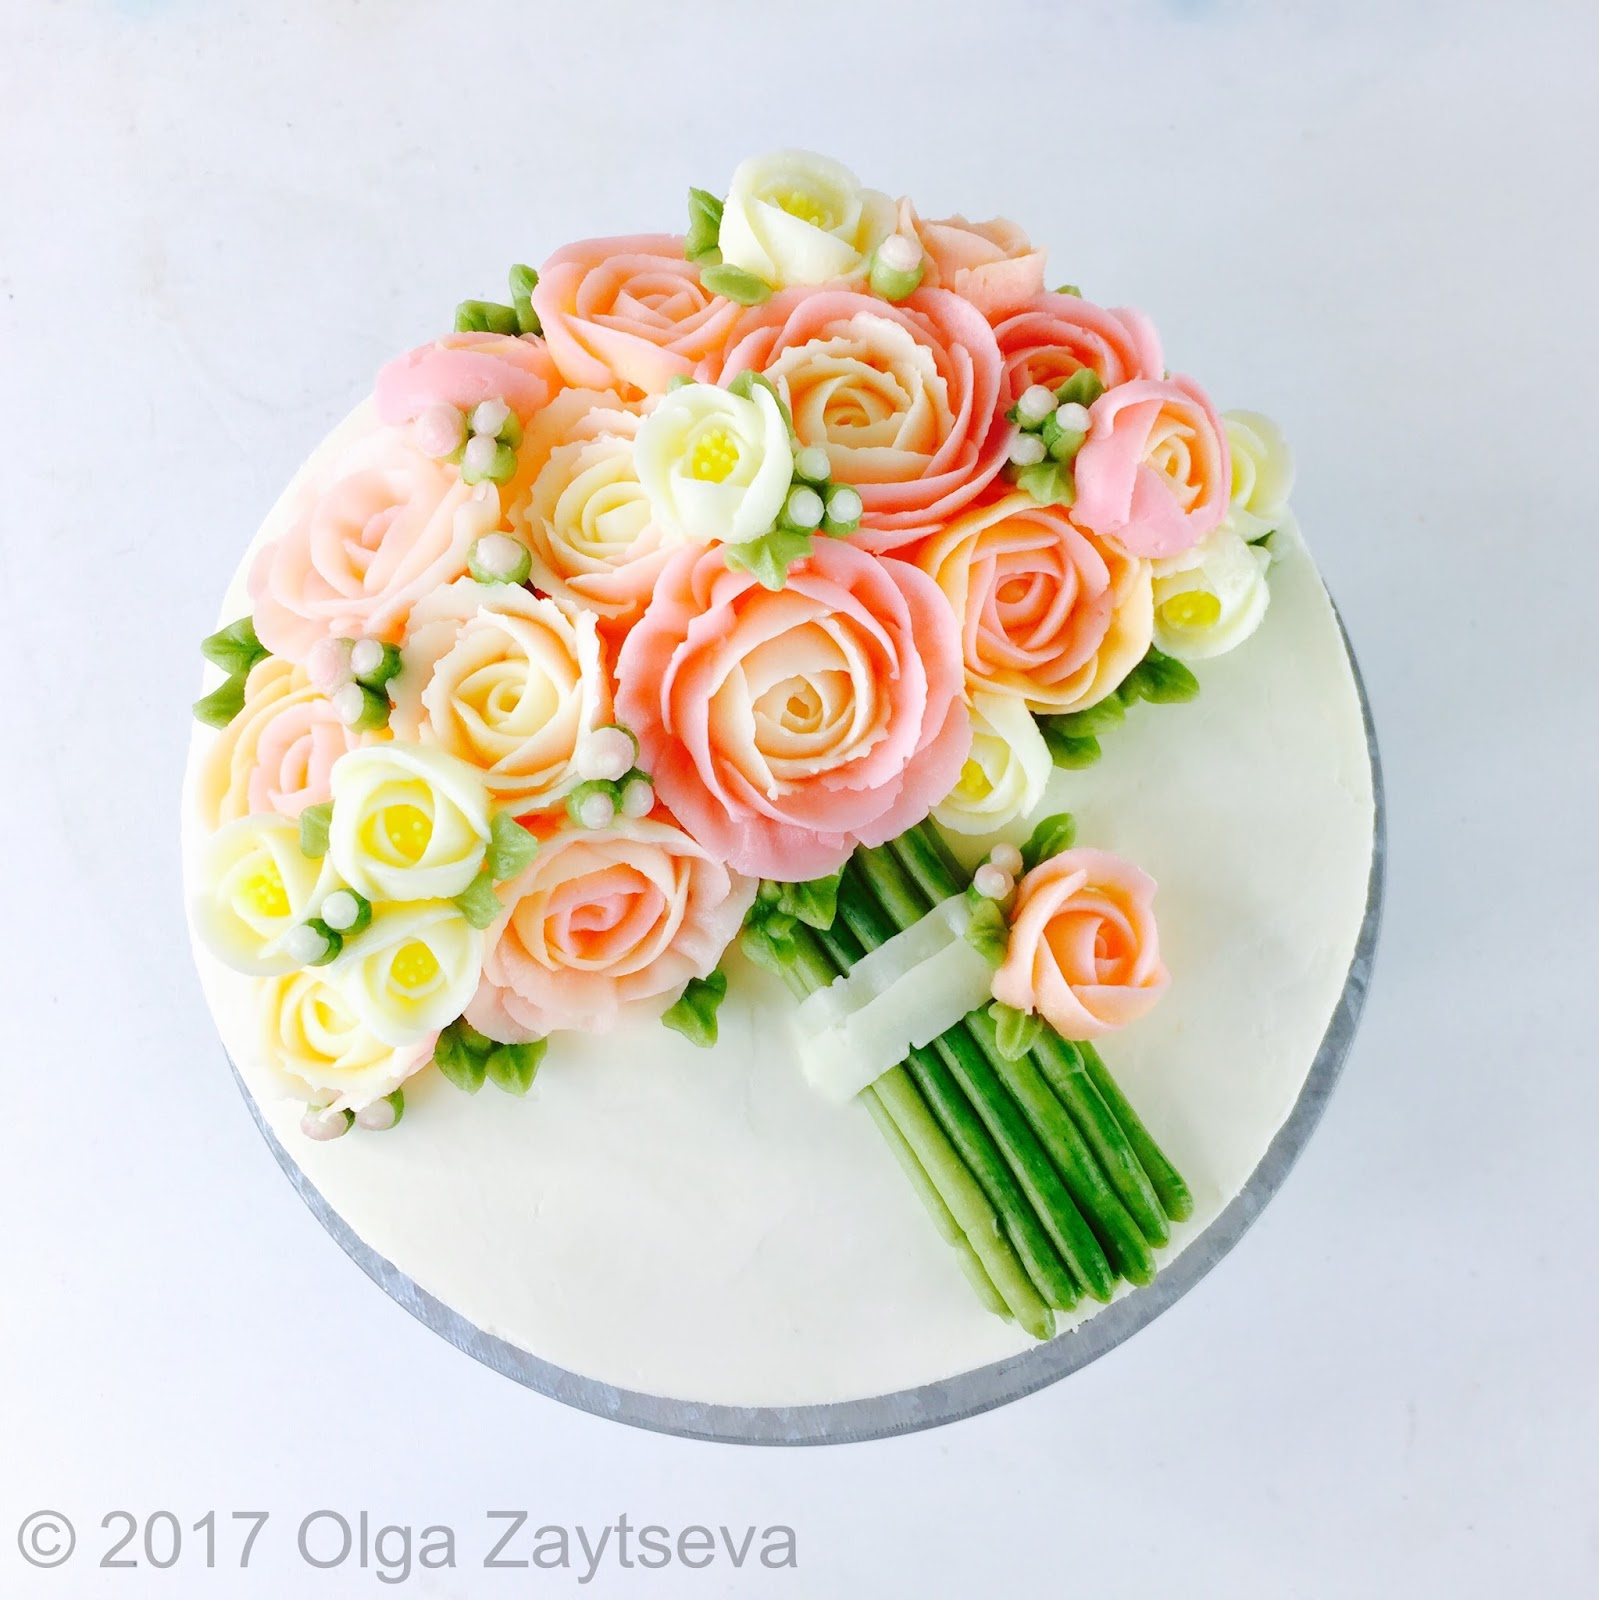 Pink roses buttercream bouquet cake olga zaytseva learn how to pipe tiny jasmine roses and buds and assemble a buttercream flower bouquet cake in variety of pink shades izmirmasajfo